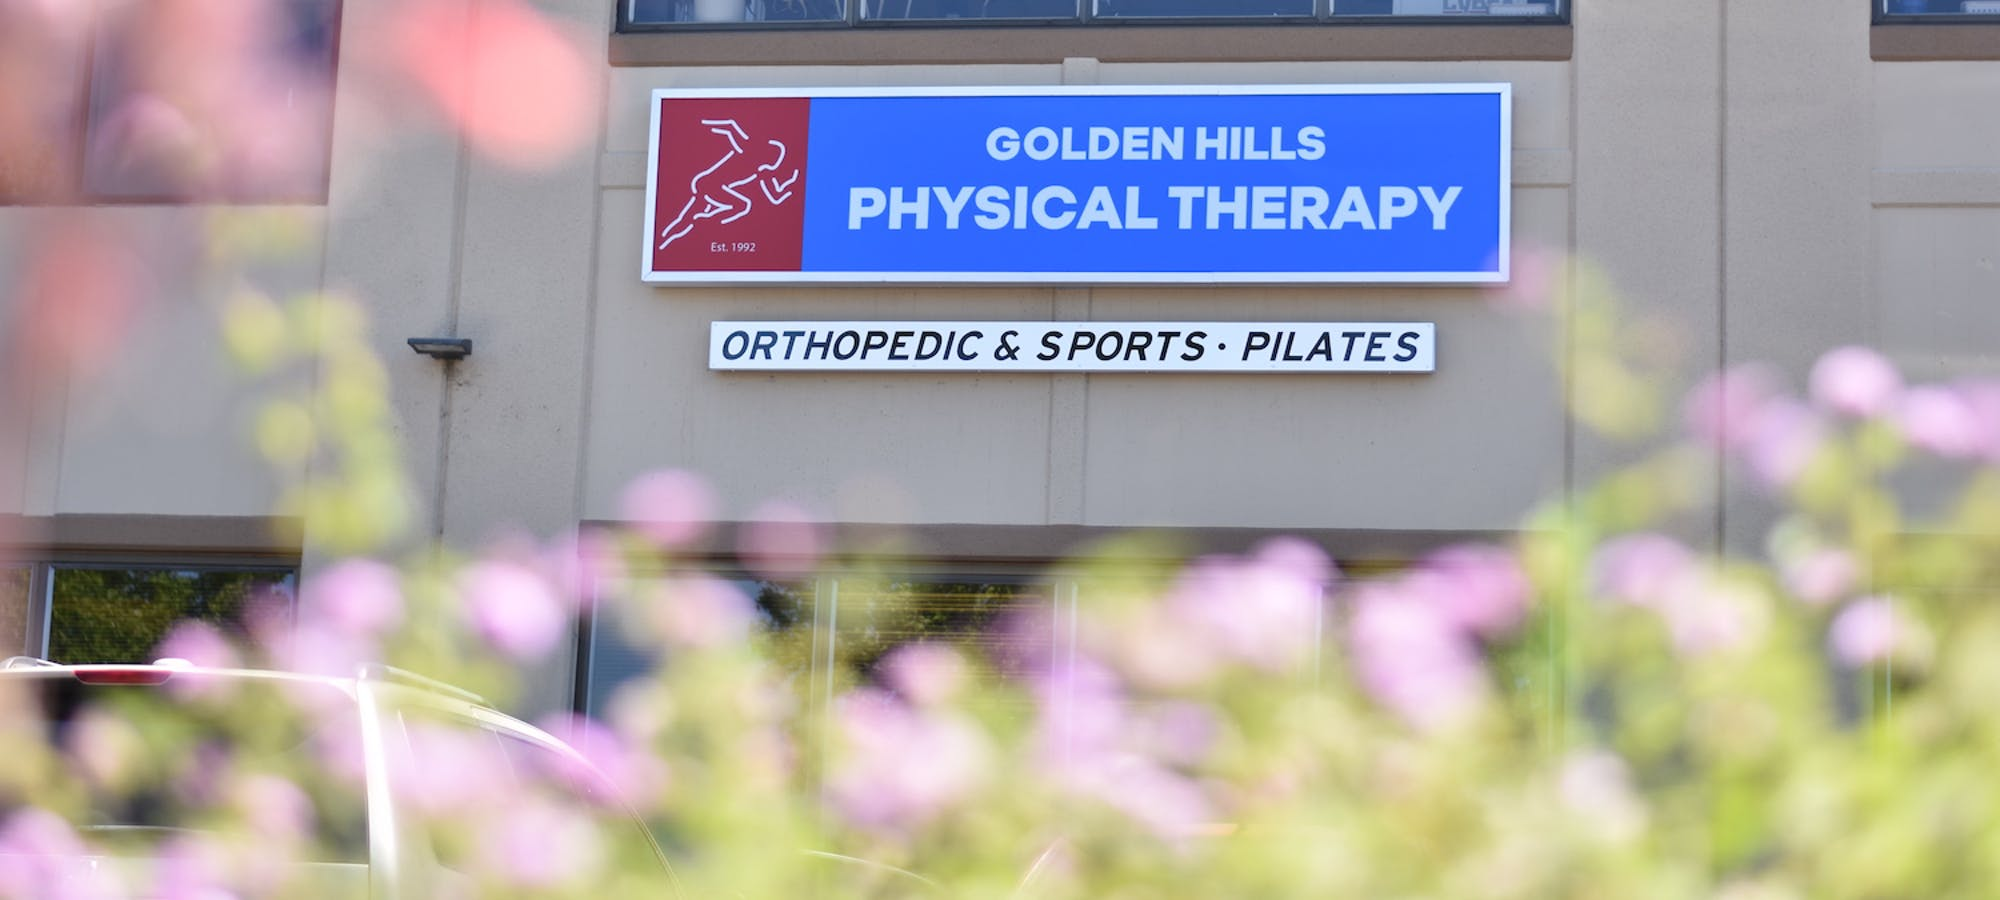 Golden Hills Orthopedic and Sports Physical Therapy